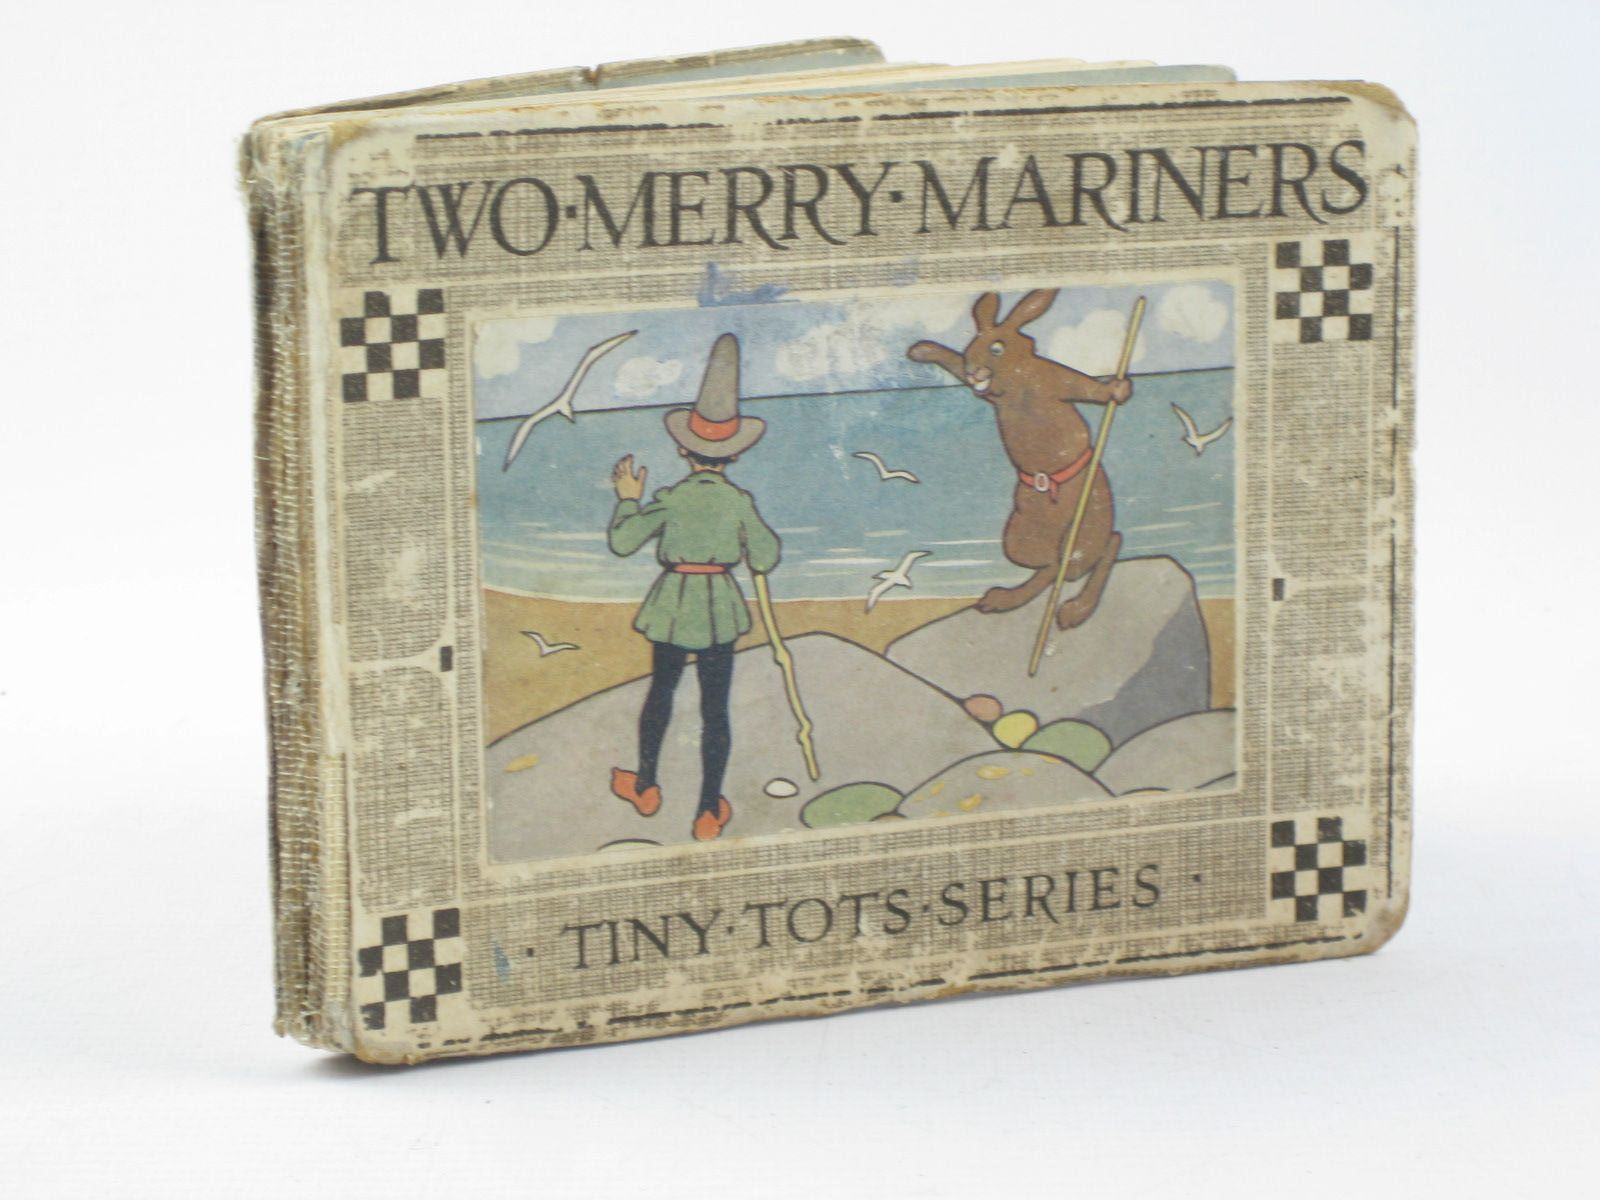 Photo of TWO MERRY MARINERS written by Brymer, John illustrated by Orr, Stewart published by Blackie & Son Ltd. (STOCK CODE: 1402298)  for sale by Stella & Rose's Books